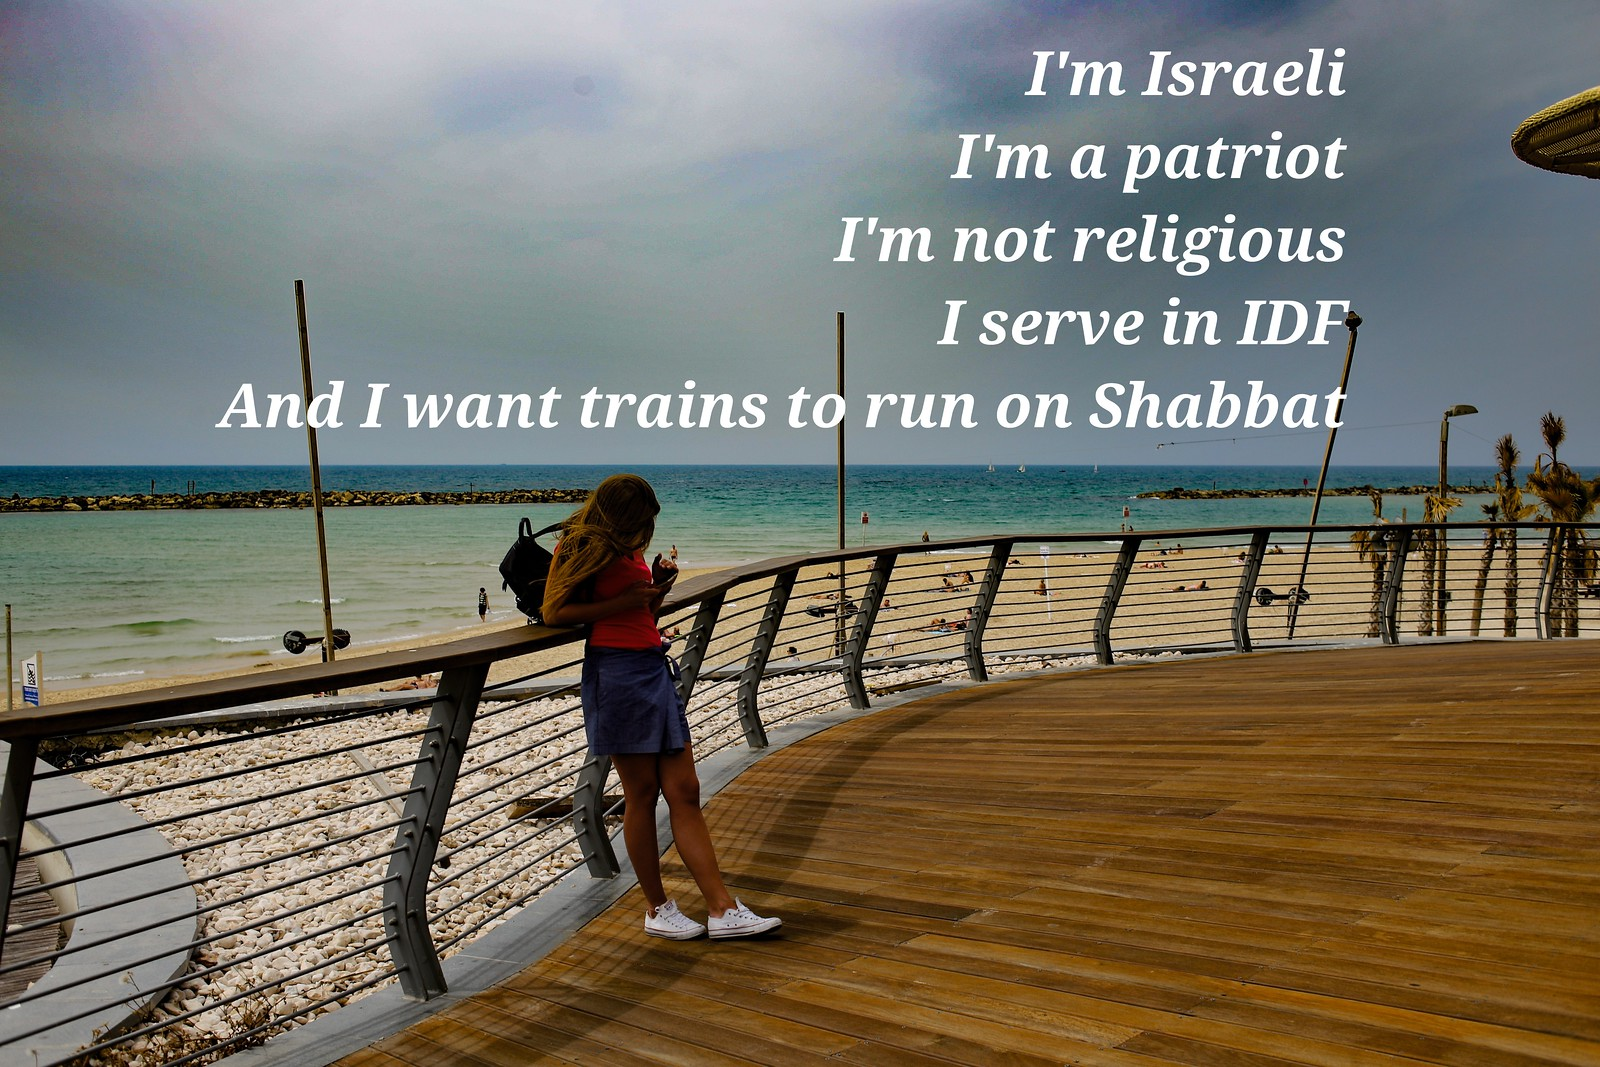 I want trains to run on Shabbat